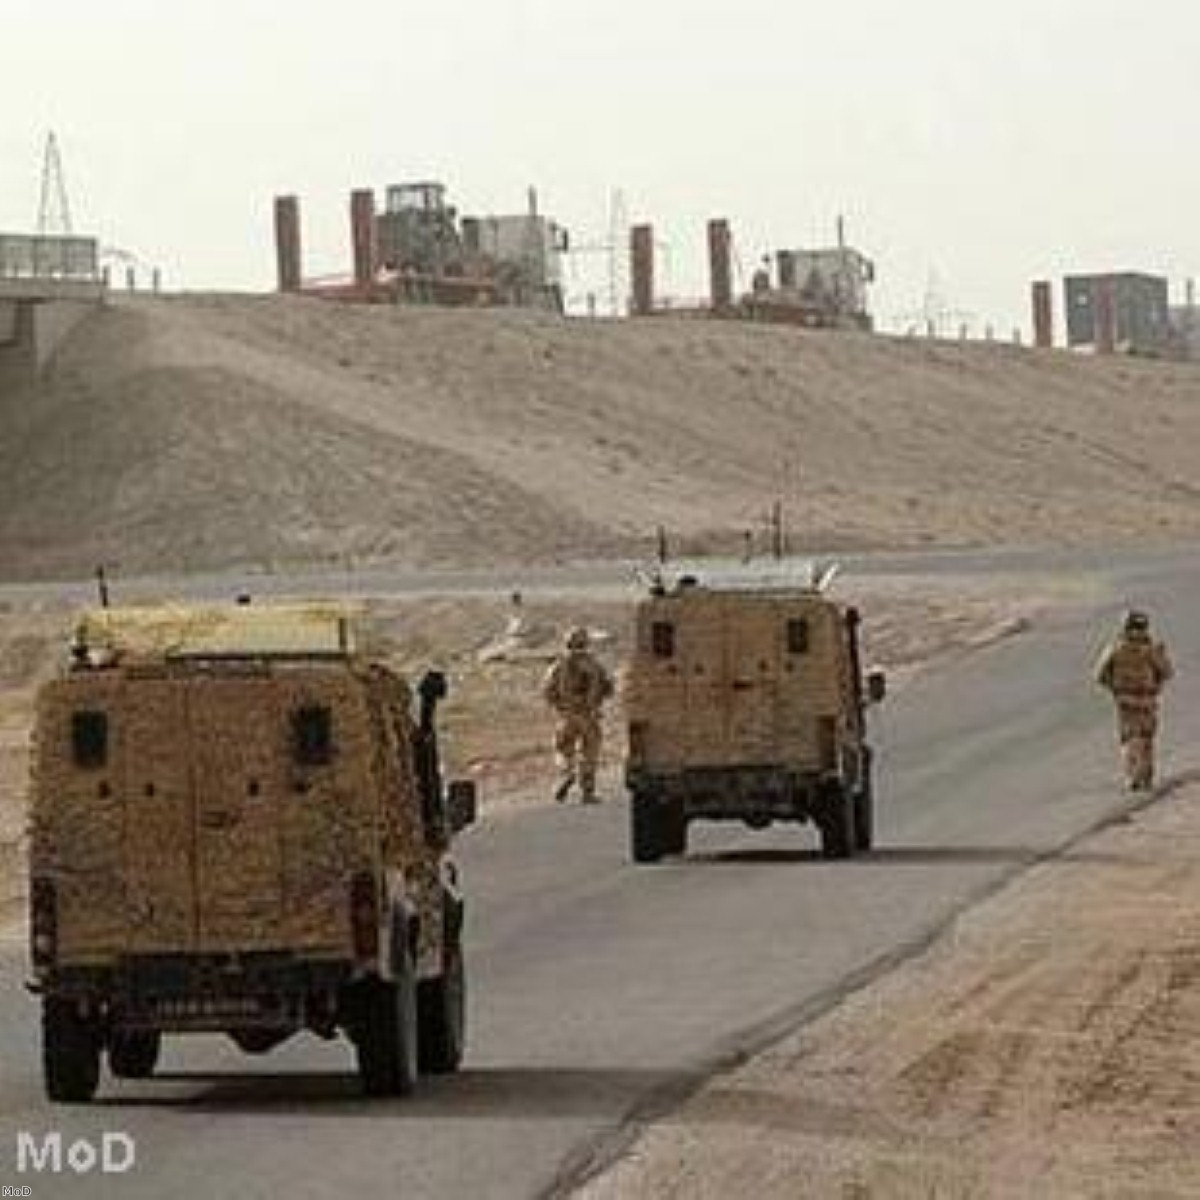 British troops on the way out of Iraq